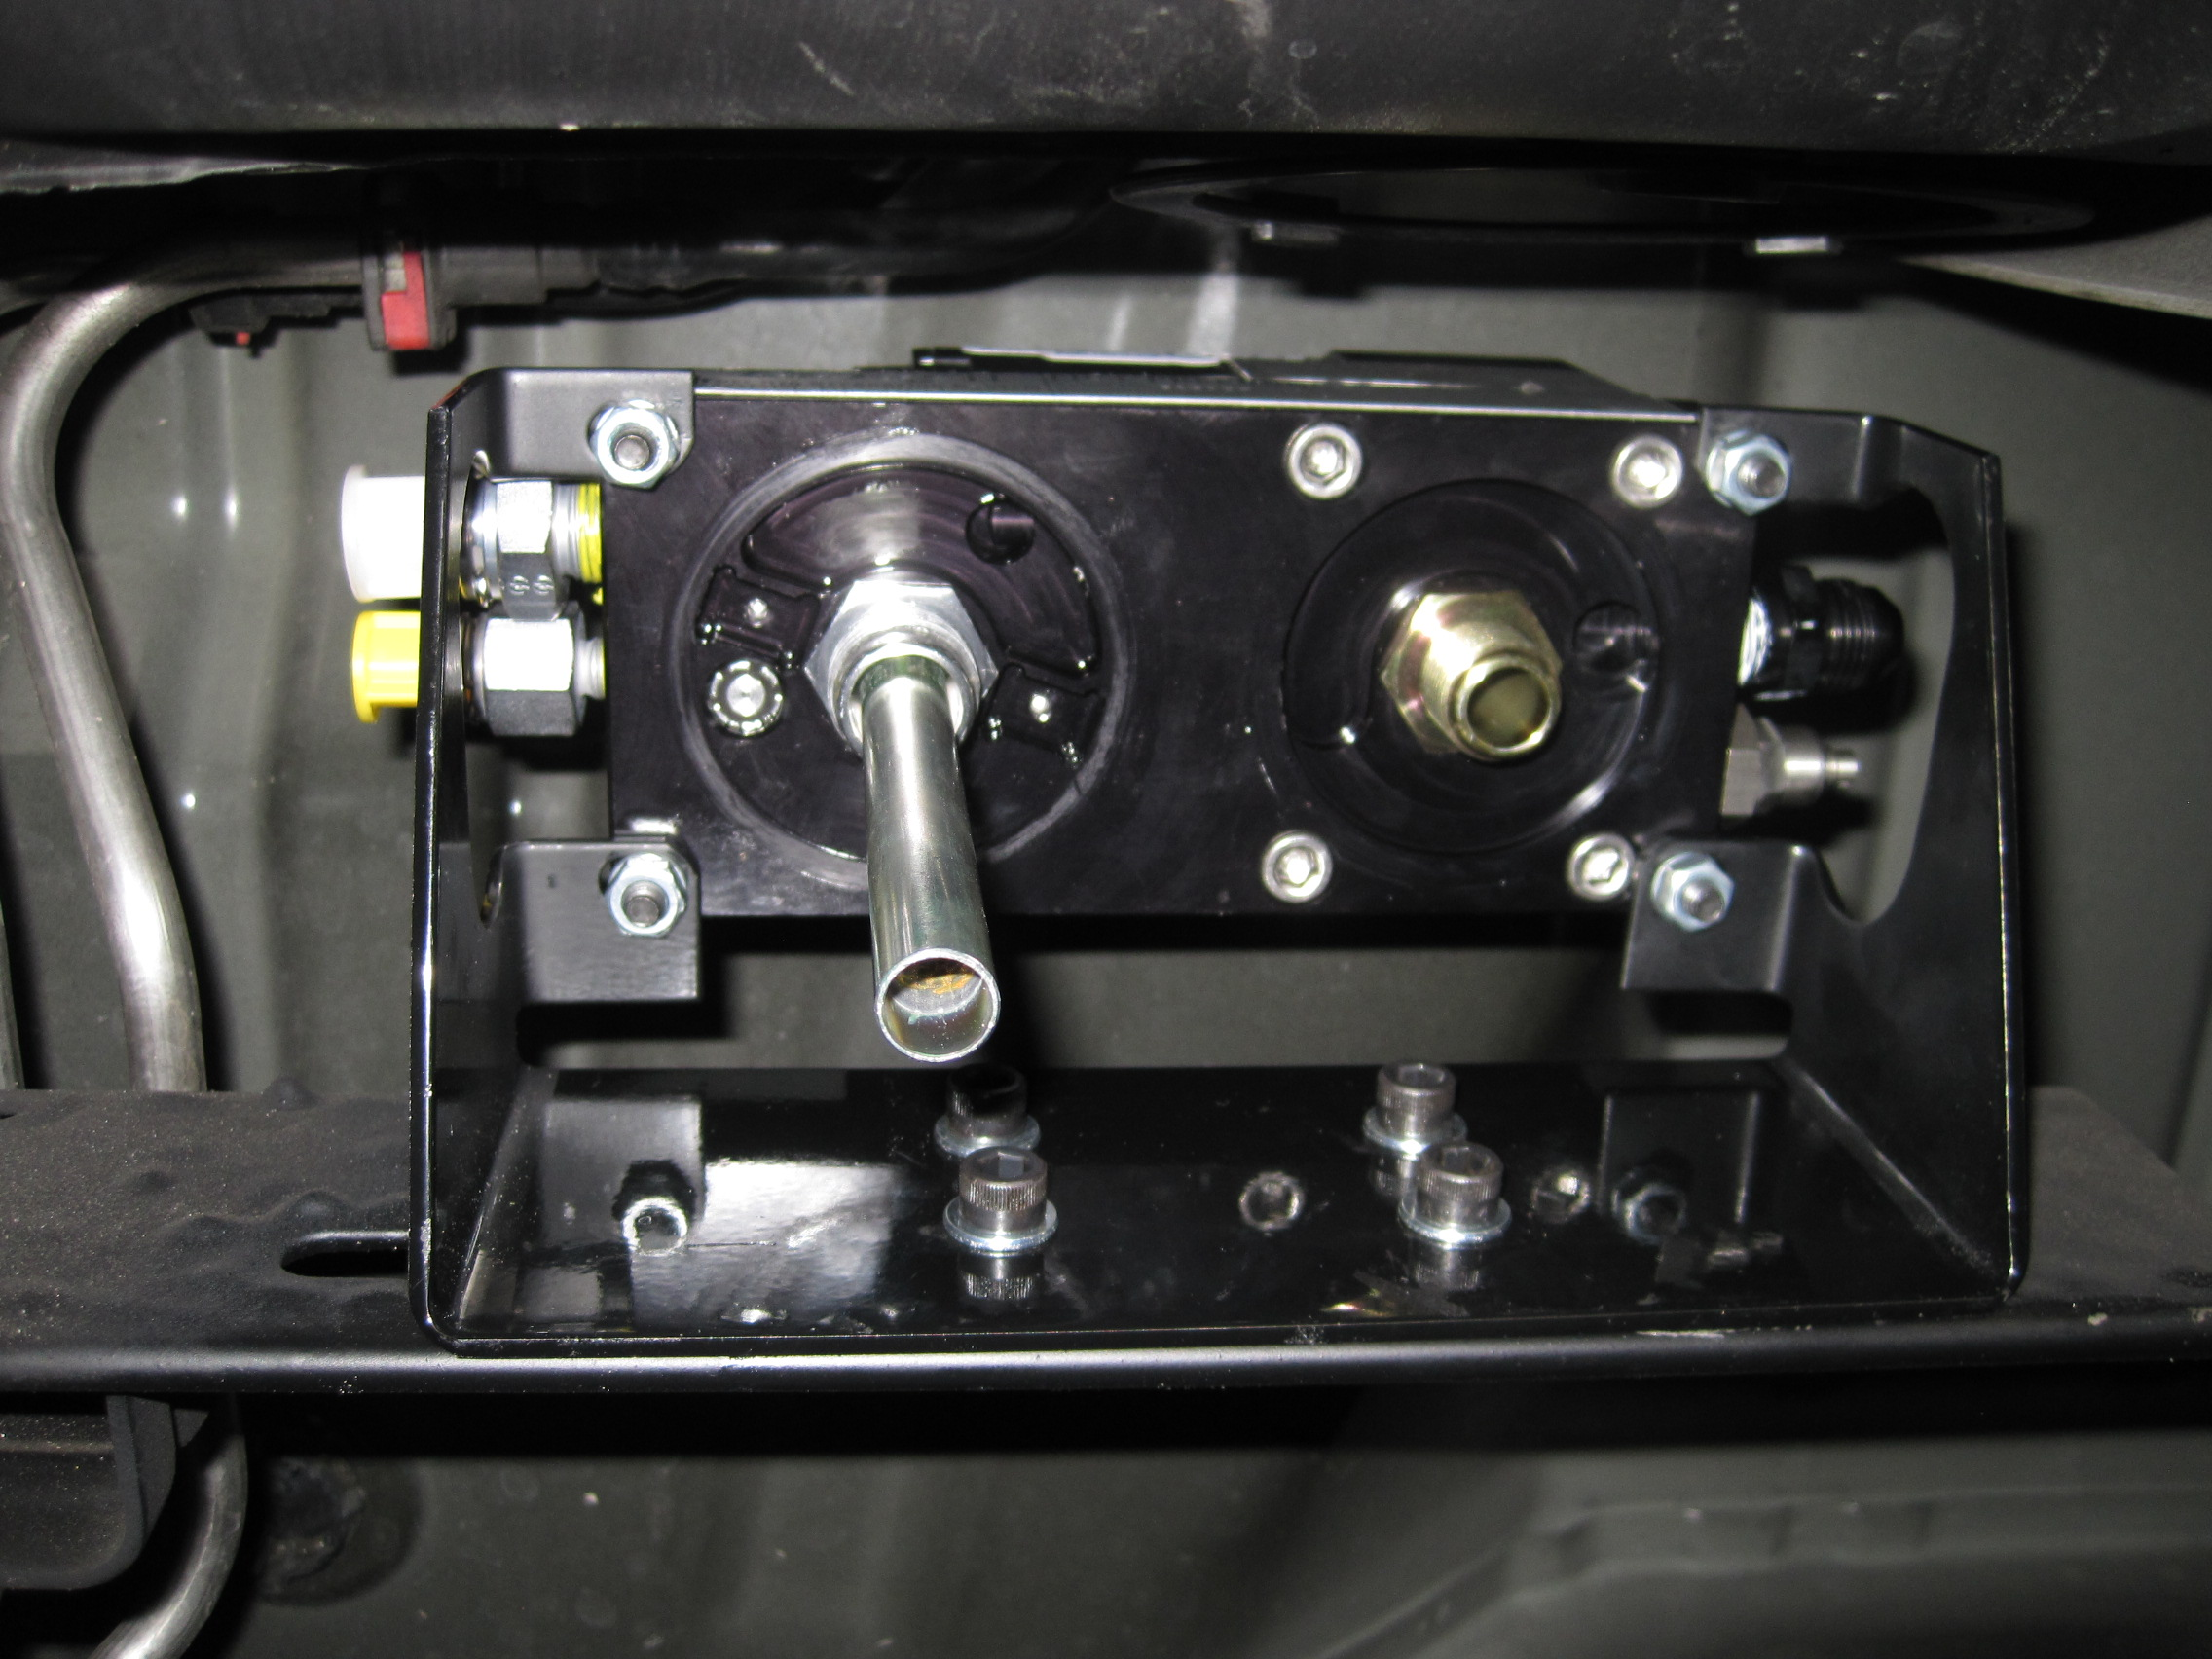 Gmc High Country >> AirDog II 165 Install - Chevy and GMC Duramax Diesel Forum